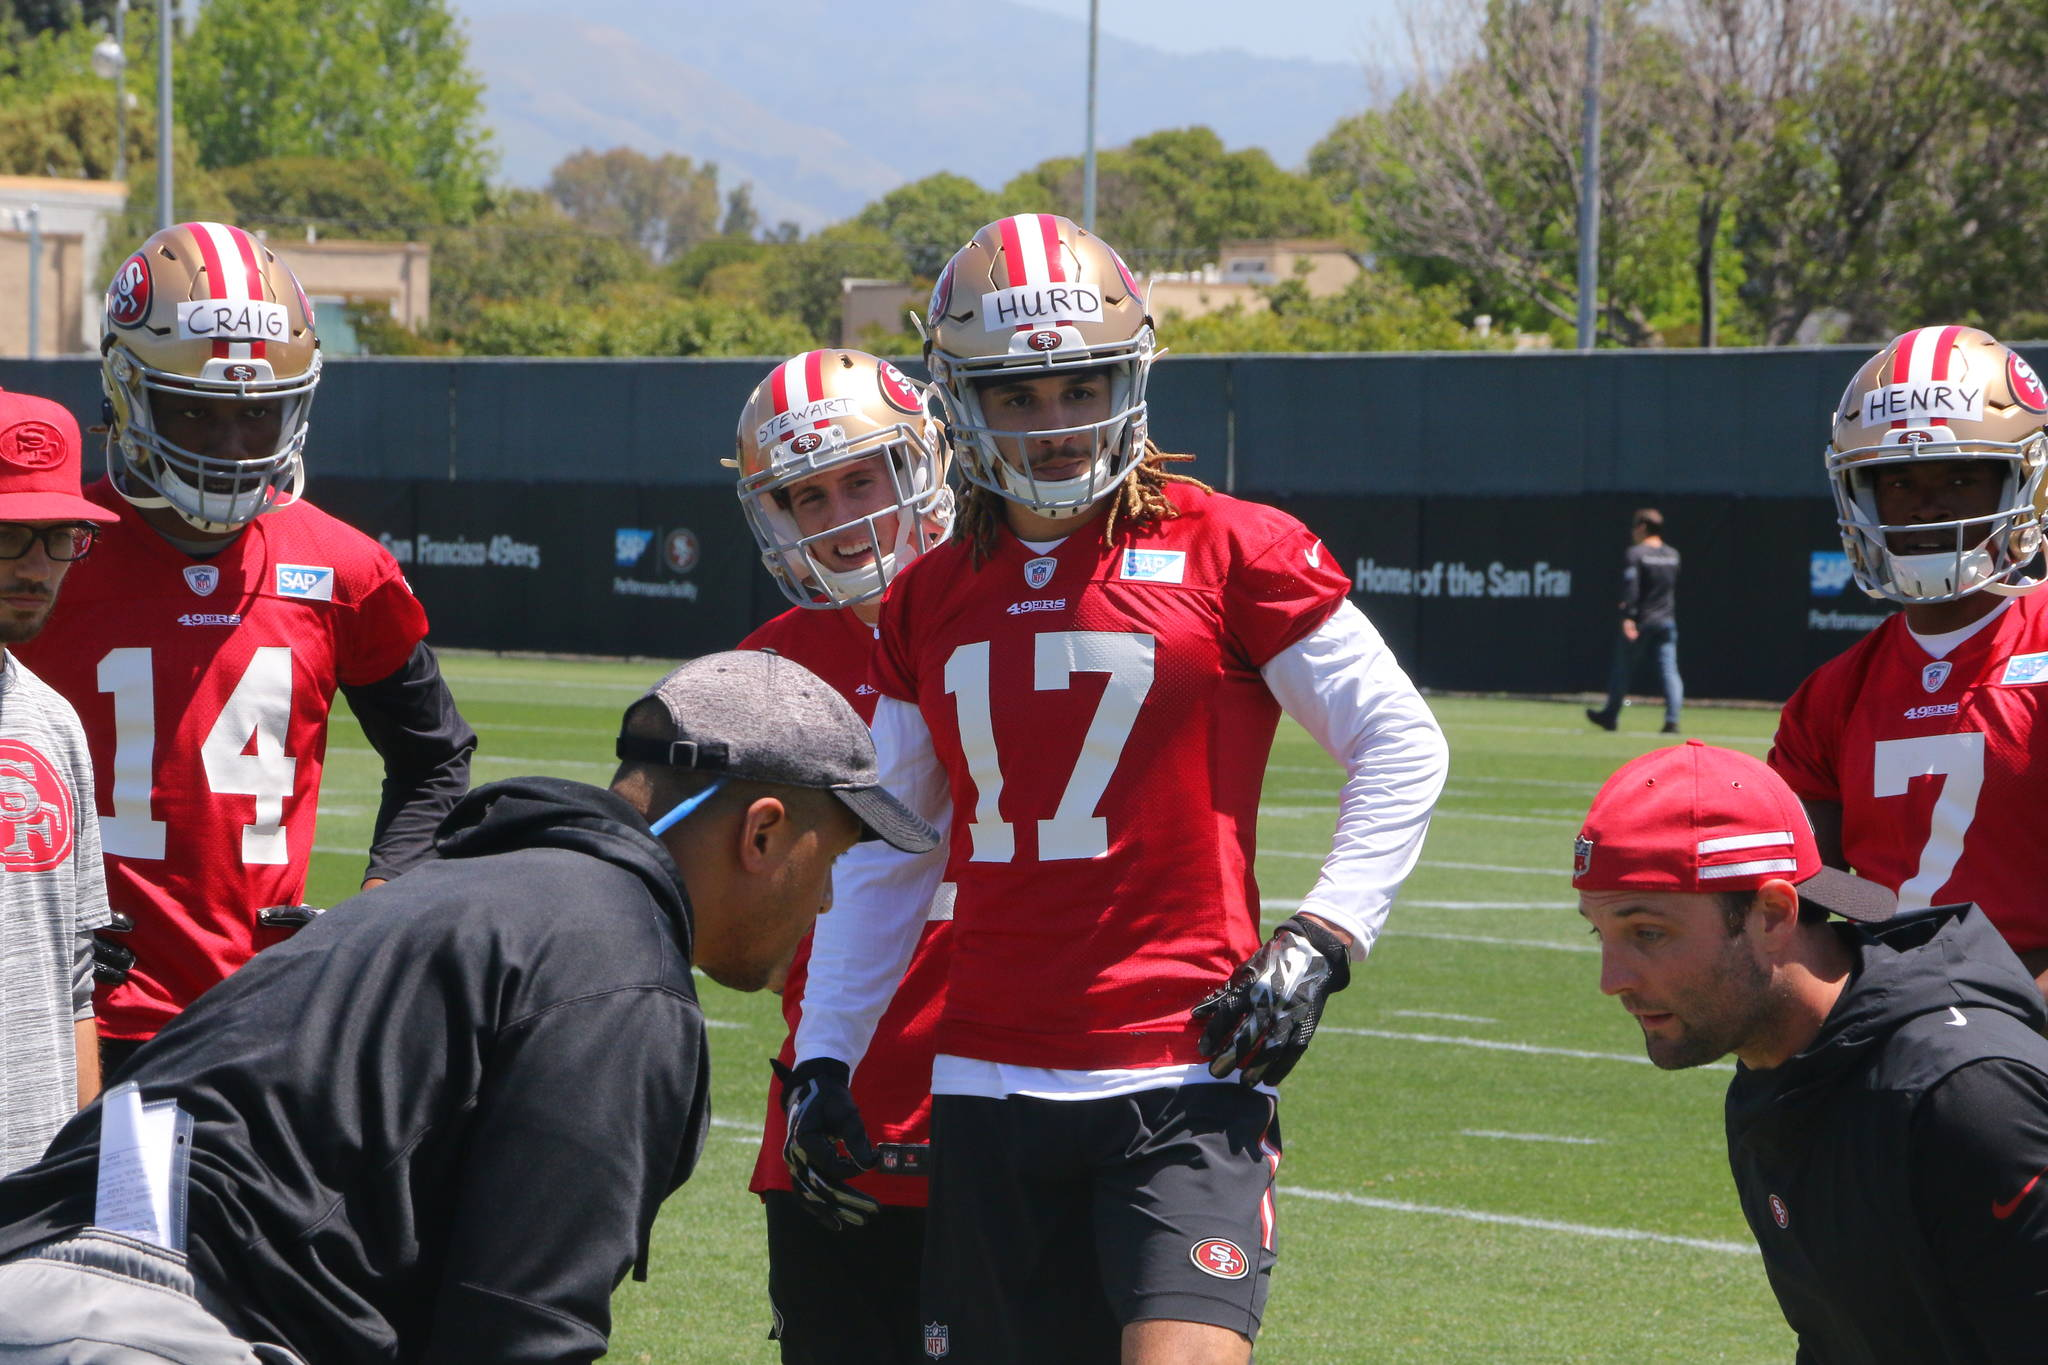 San Francisco 49ers rookie wide receiver Jalen Hurd (17) listens to coaching during a rookie minicamp on May 3, 2019 at the team's facility in Santa Clara, Calif. (Ryan Gorcey / S.F. Examiner)